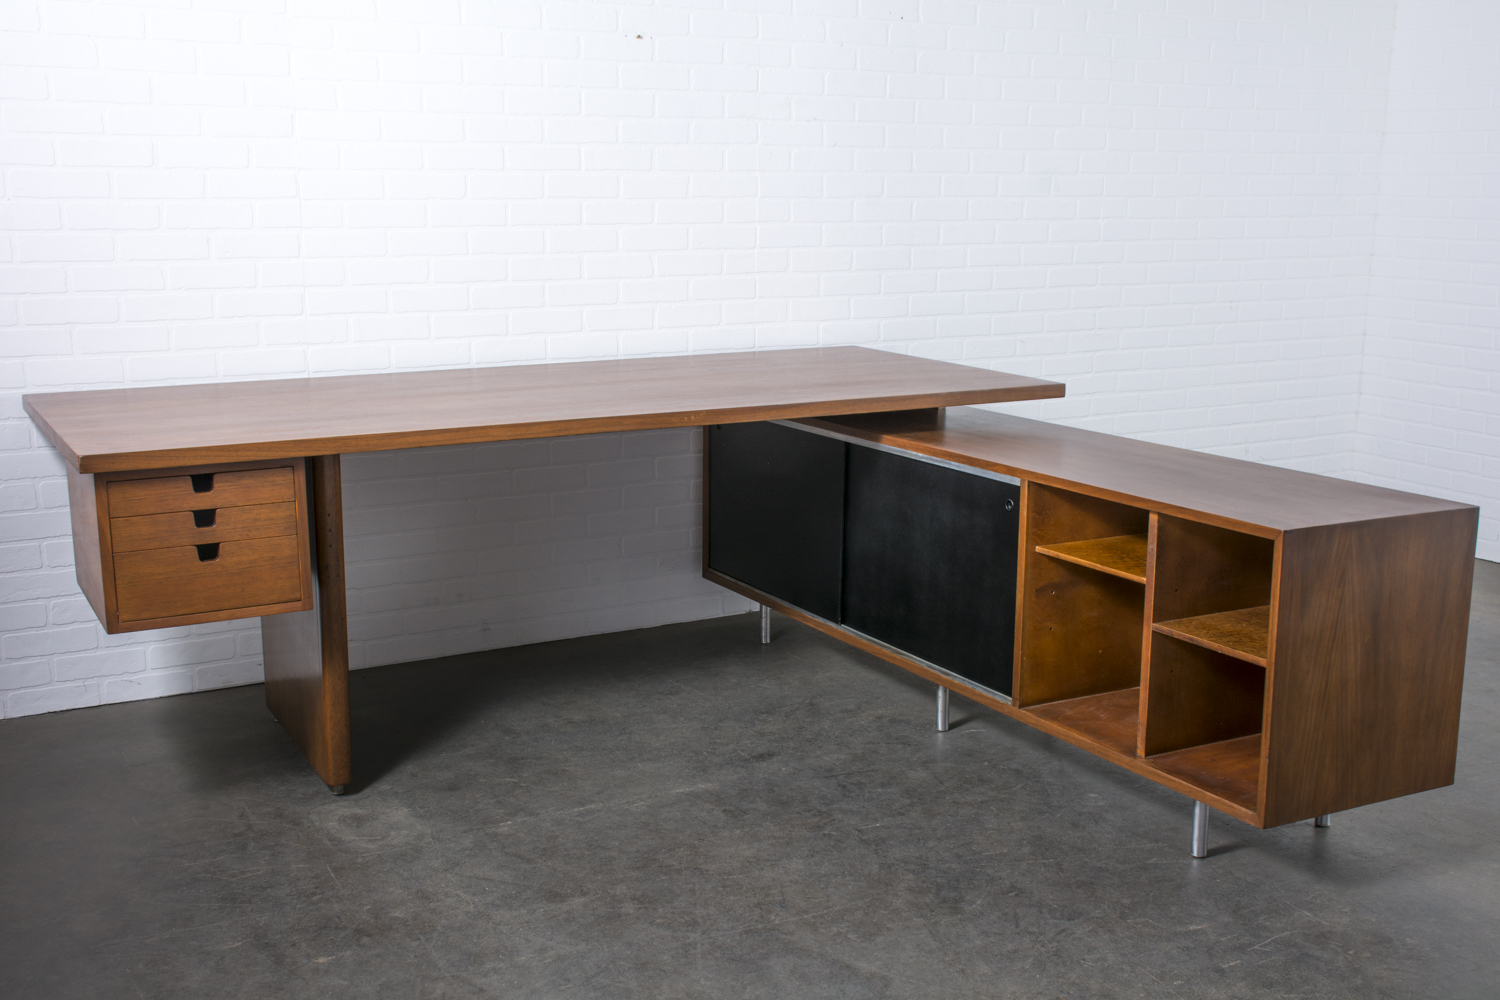 Vintage Walnut Executive Desk with Return by George Nelson for Herman Miller